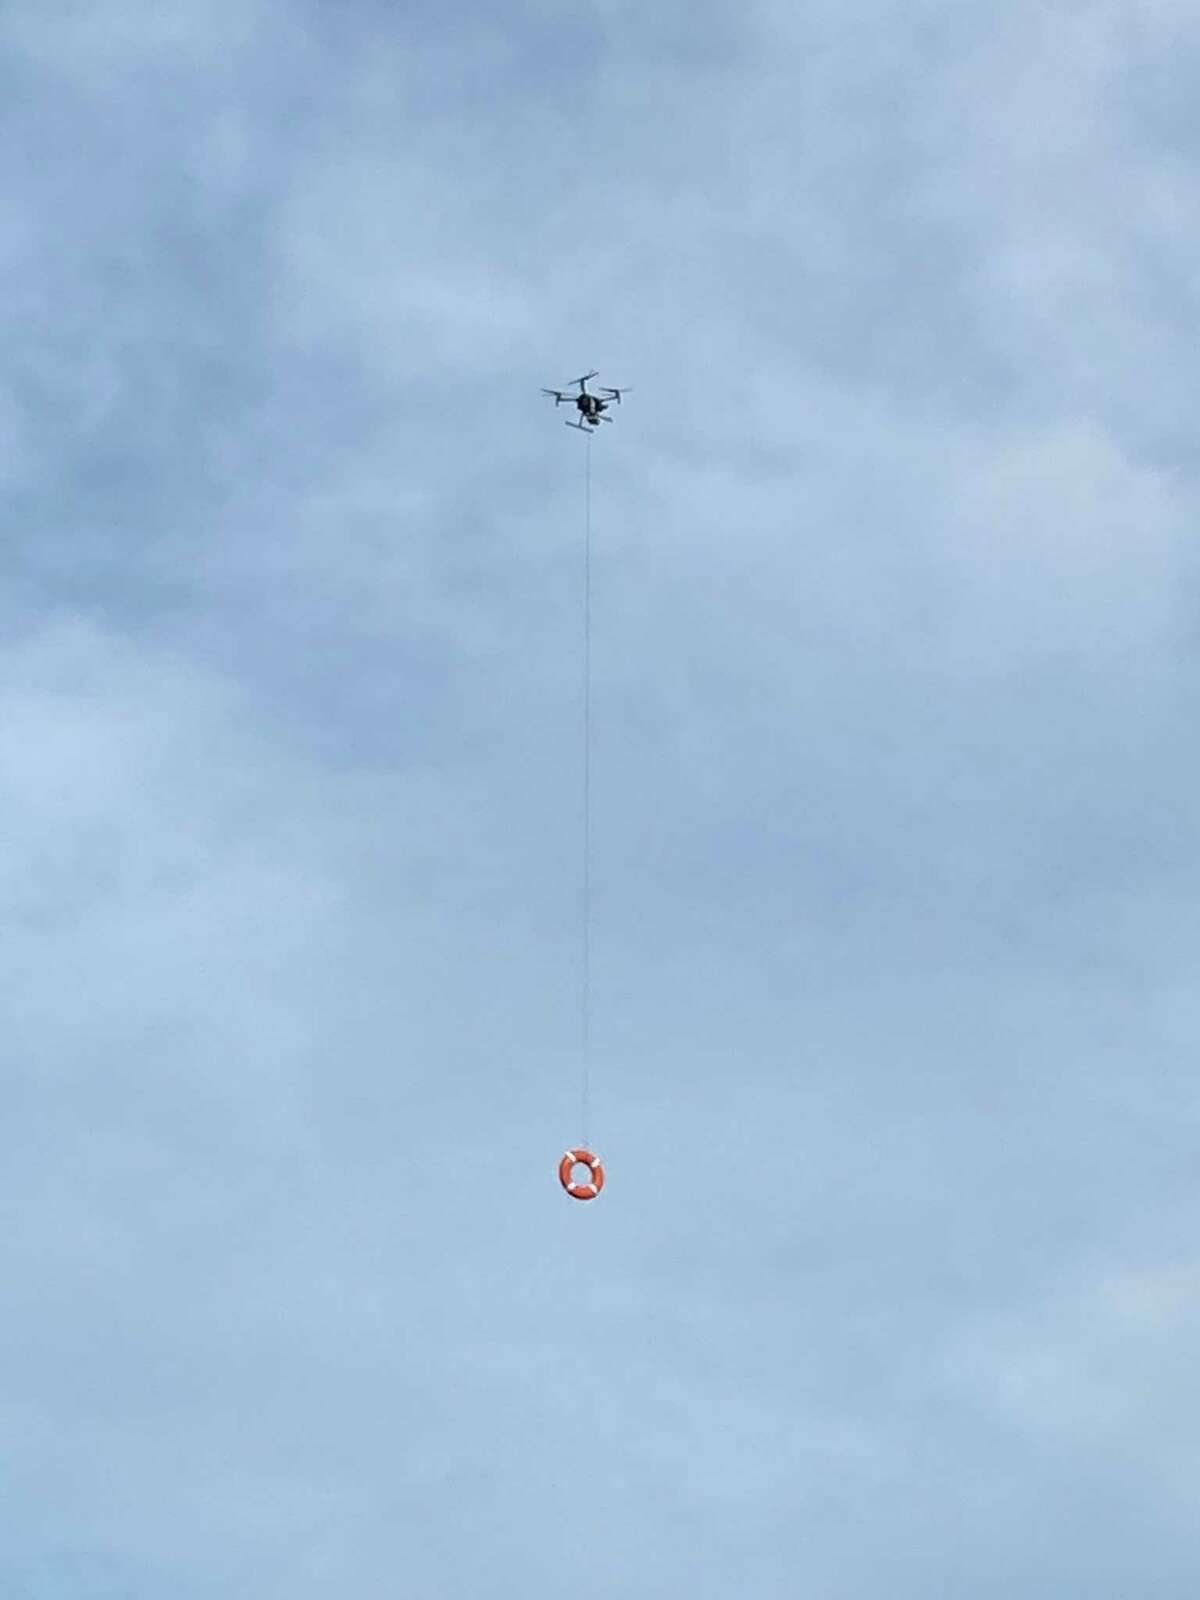 The Fairfield Police Department practicing using a drone to deploy personal floatation devices to struggling swimmers.